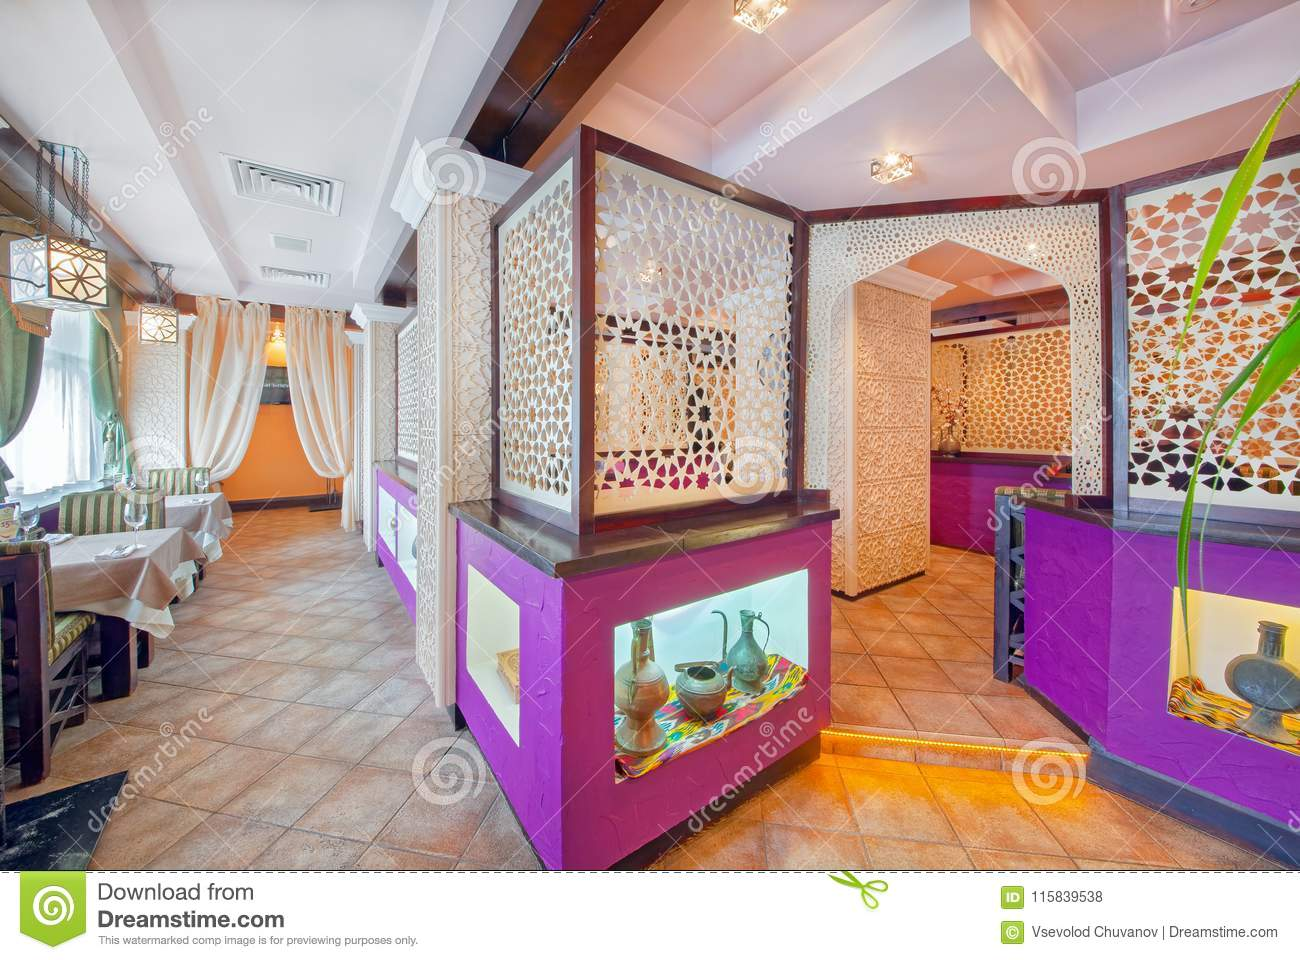 MOSCOW - SEPTEMBER 18: The Interior Of The Oriental Restaurant